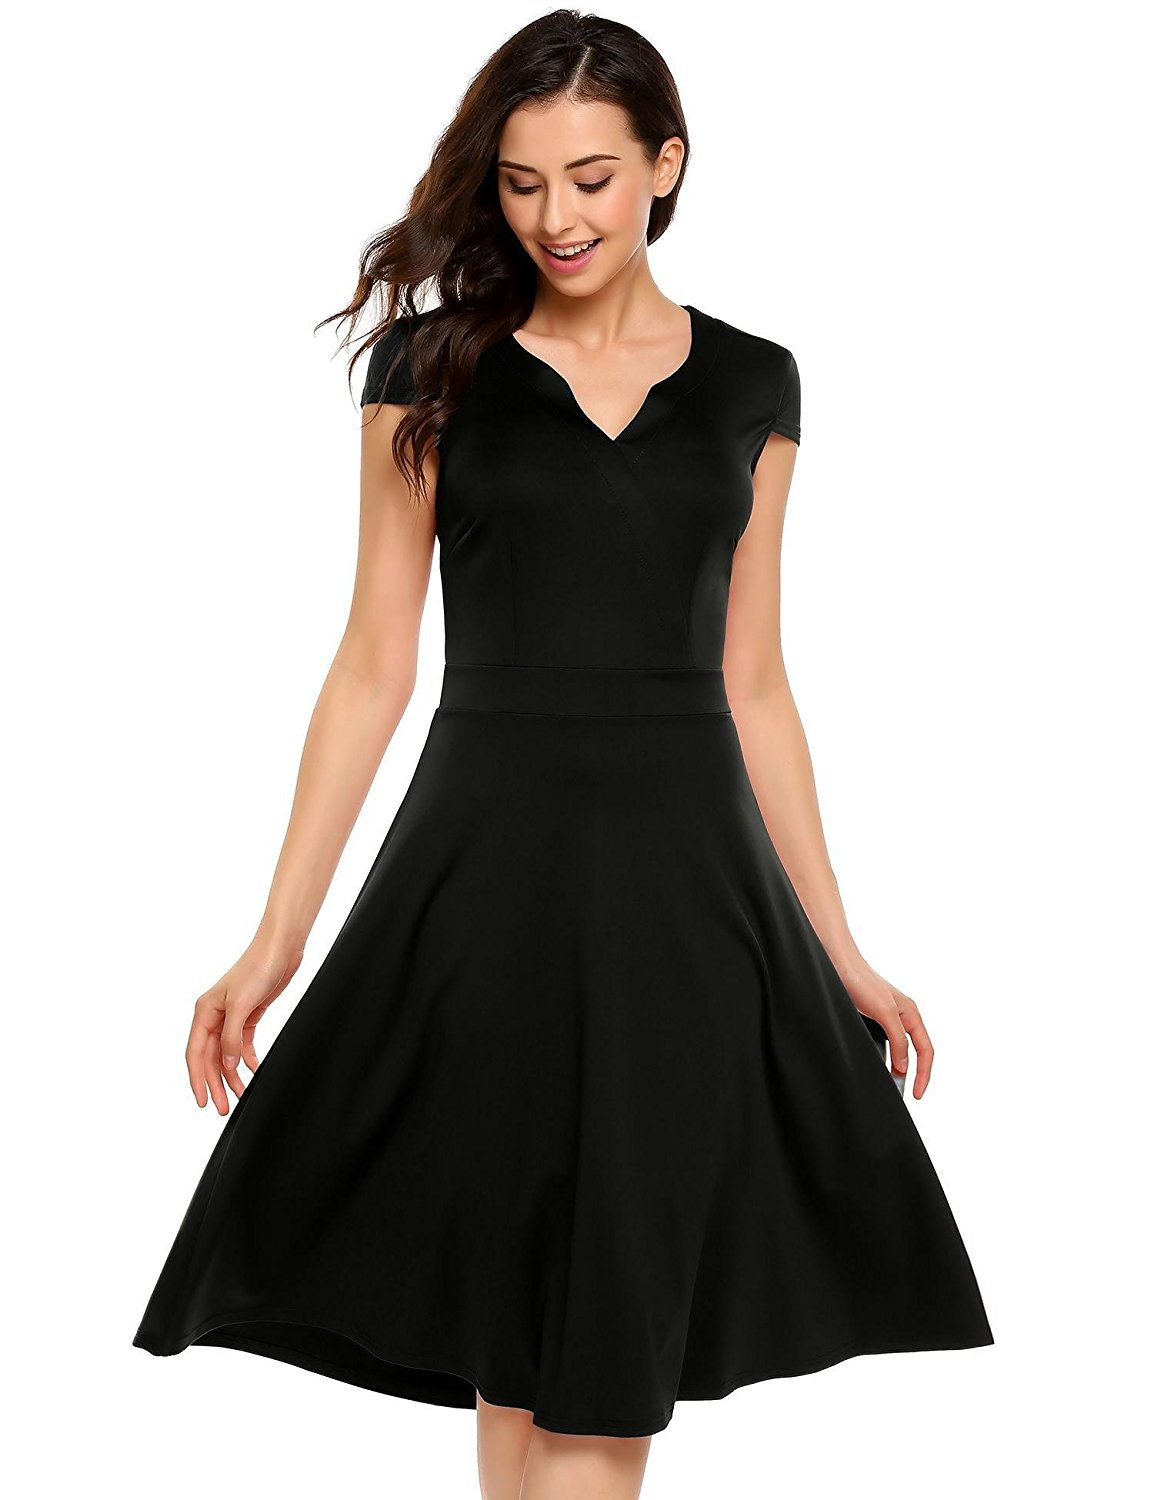 ANGVNS Women\'s Cap Sleeve Solid Color Swing Dresses, Knee Length ...